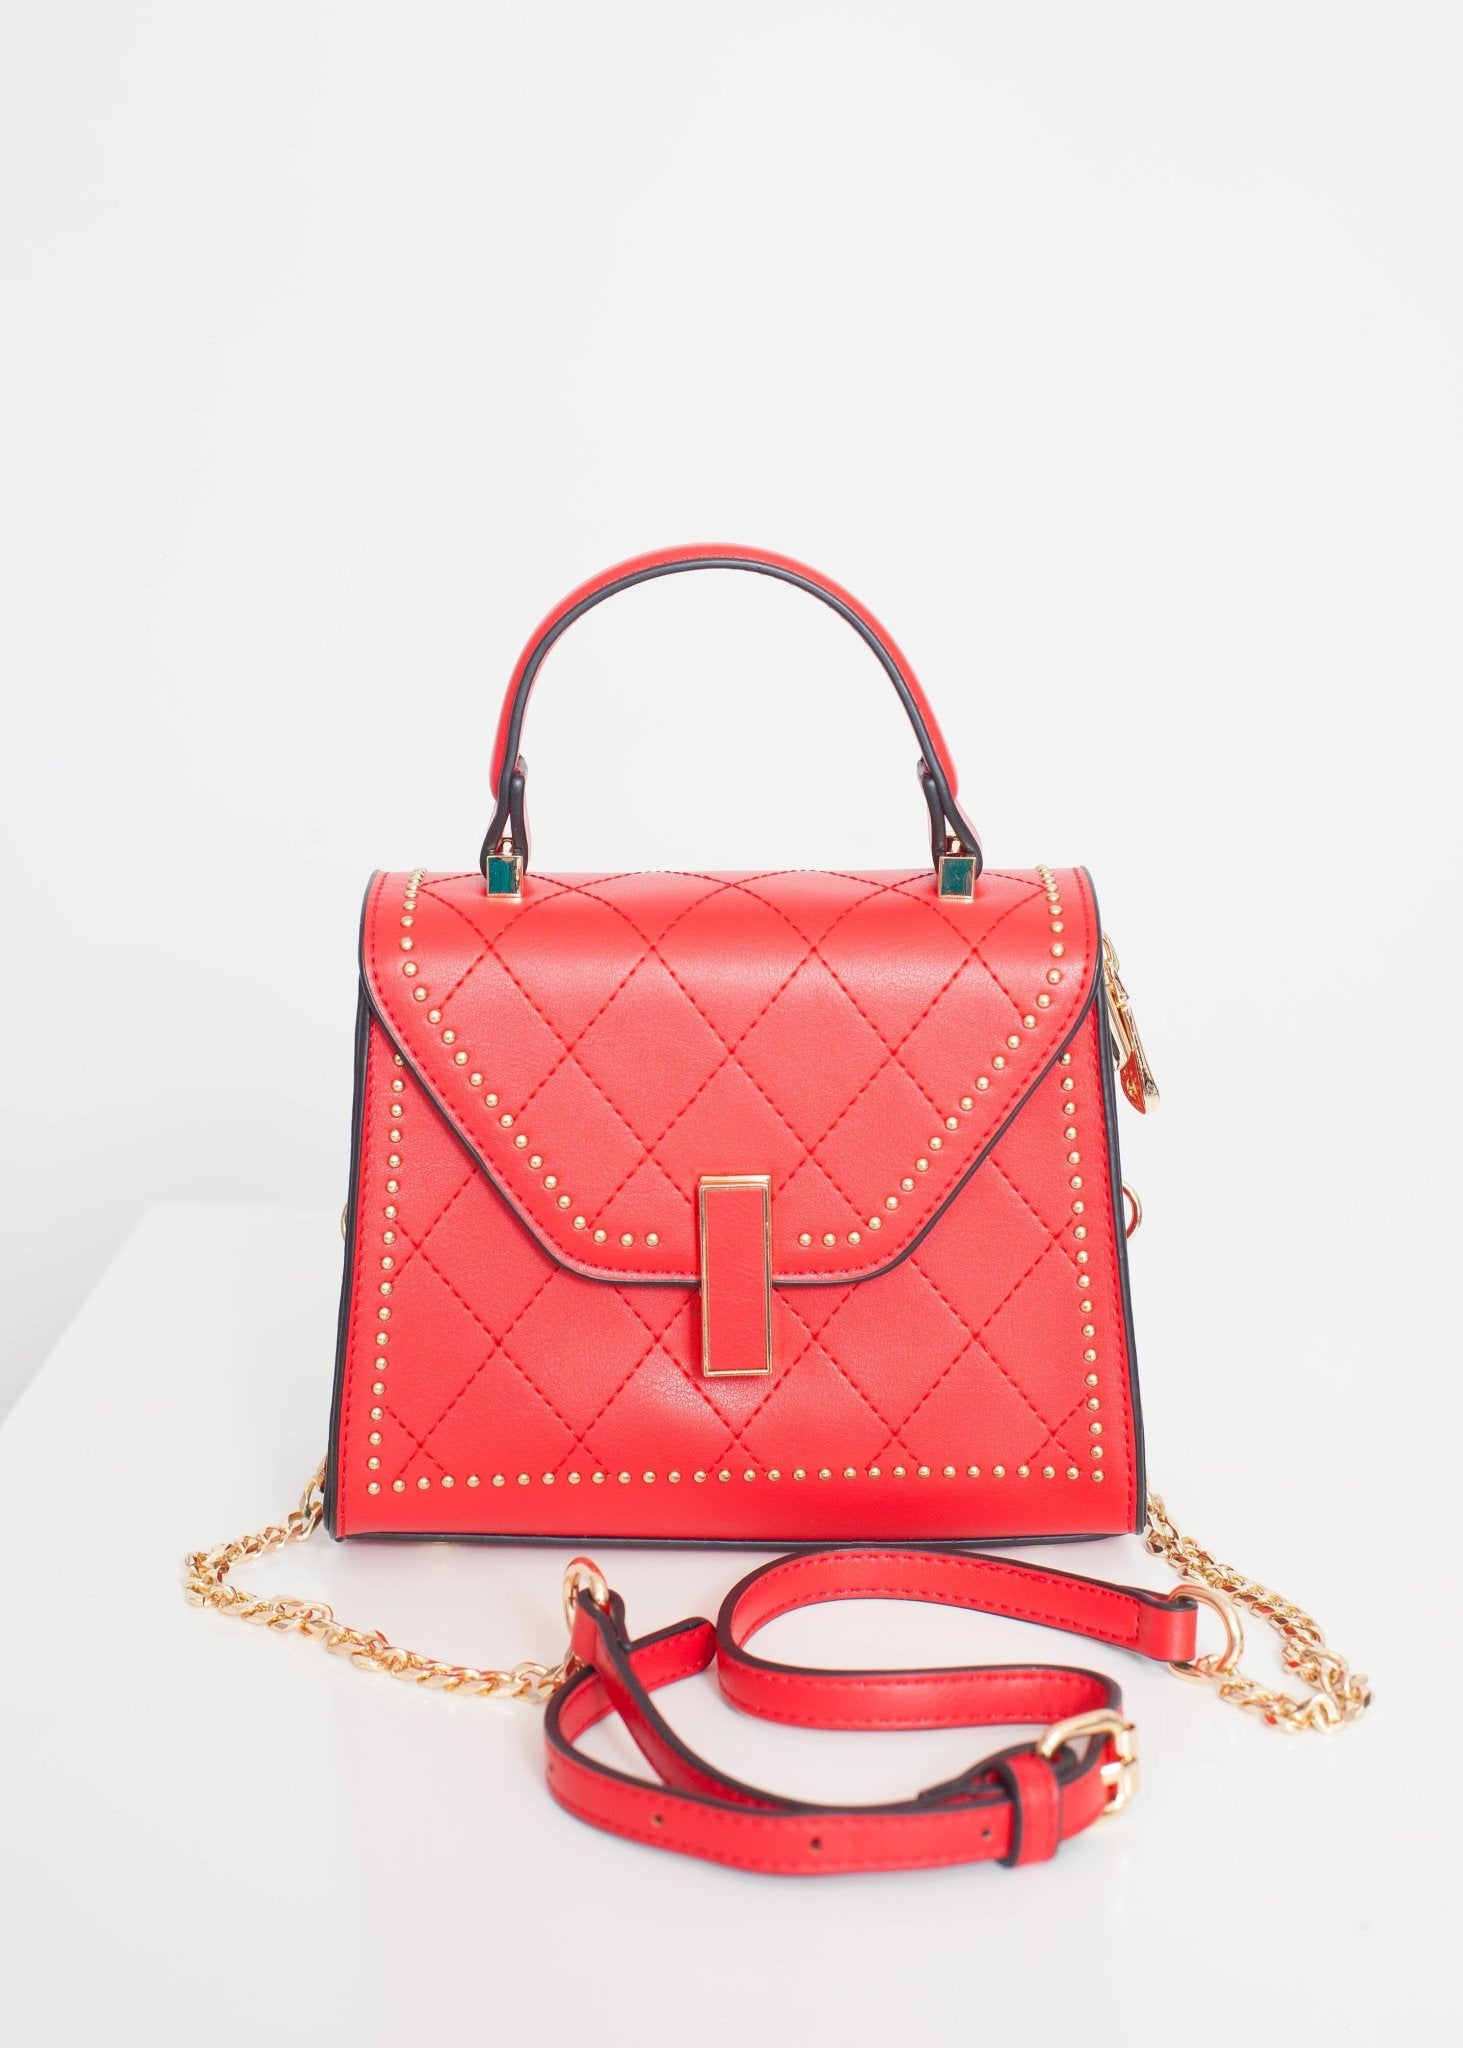 Alex Mini Tote Bag In Red - The Walk in Wardrobe